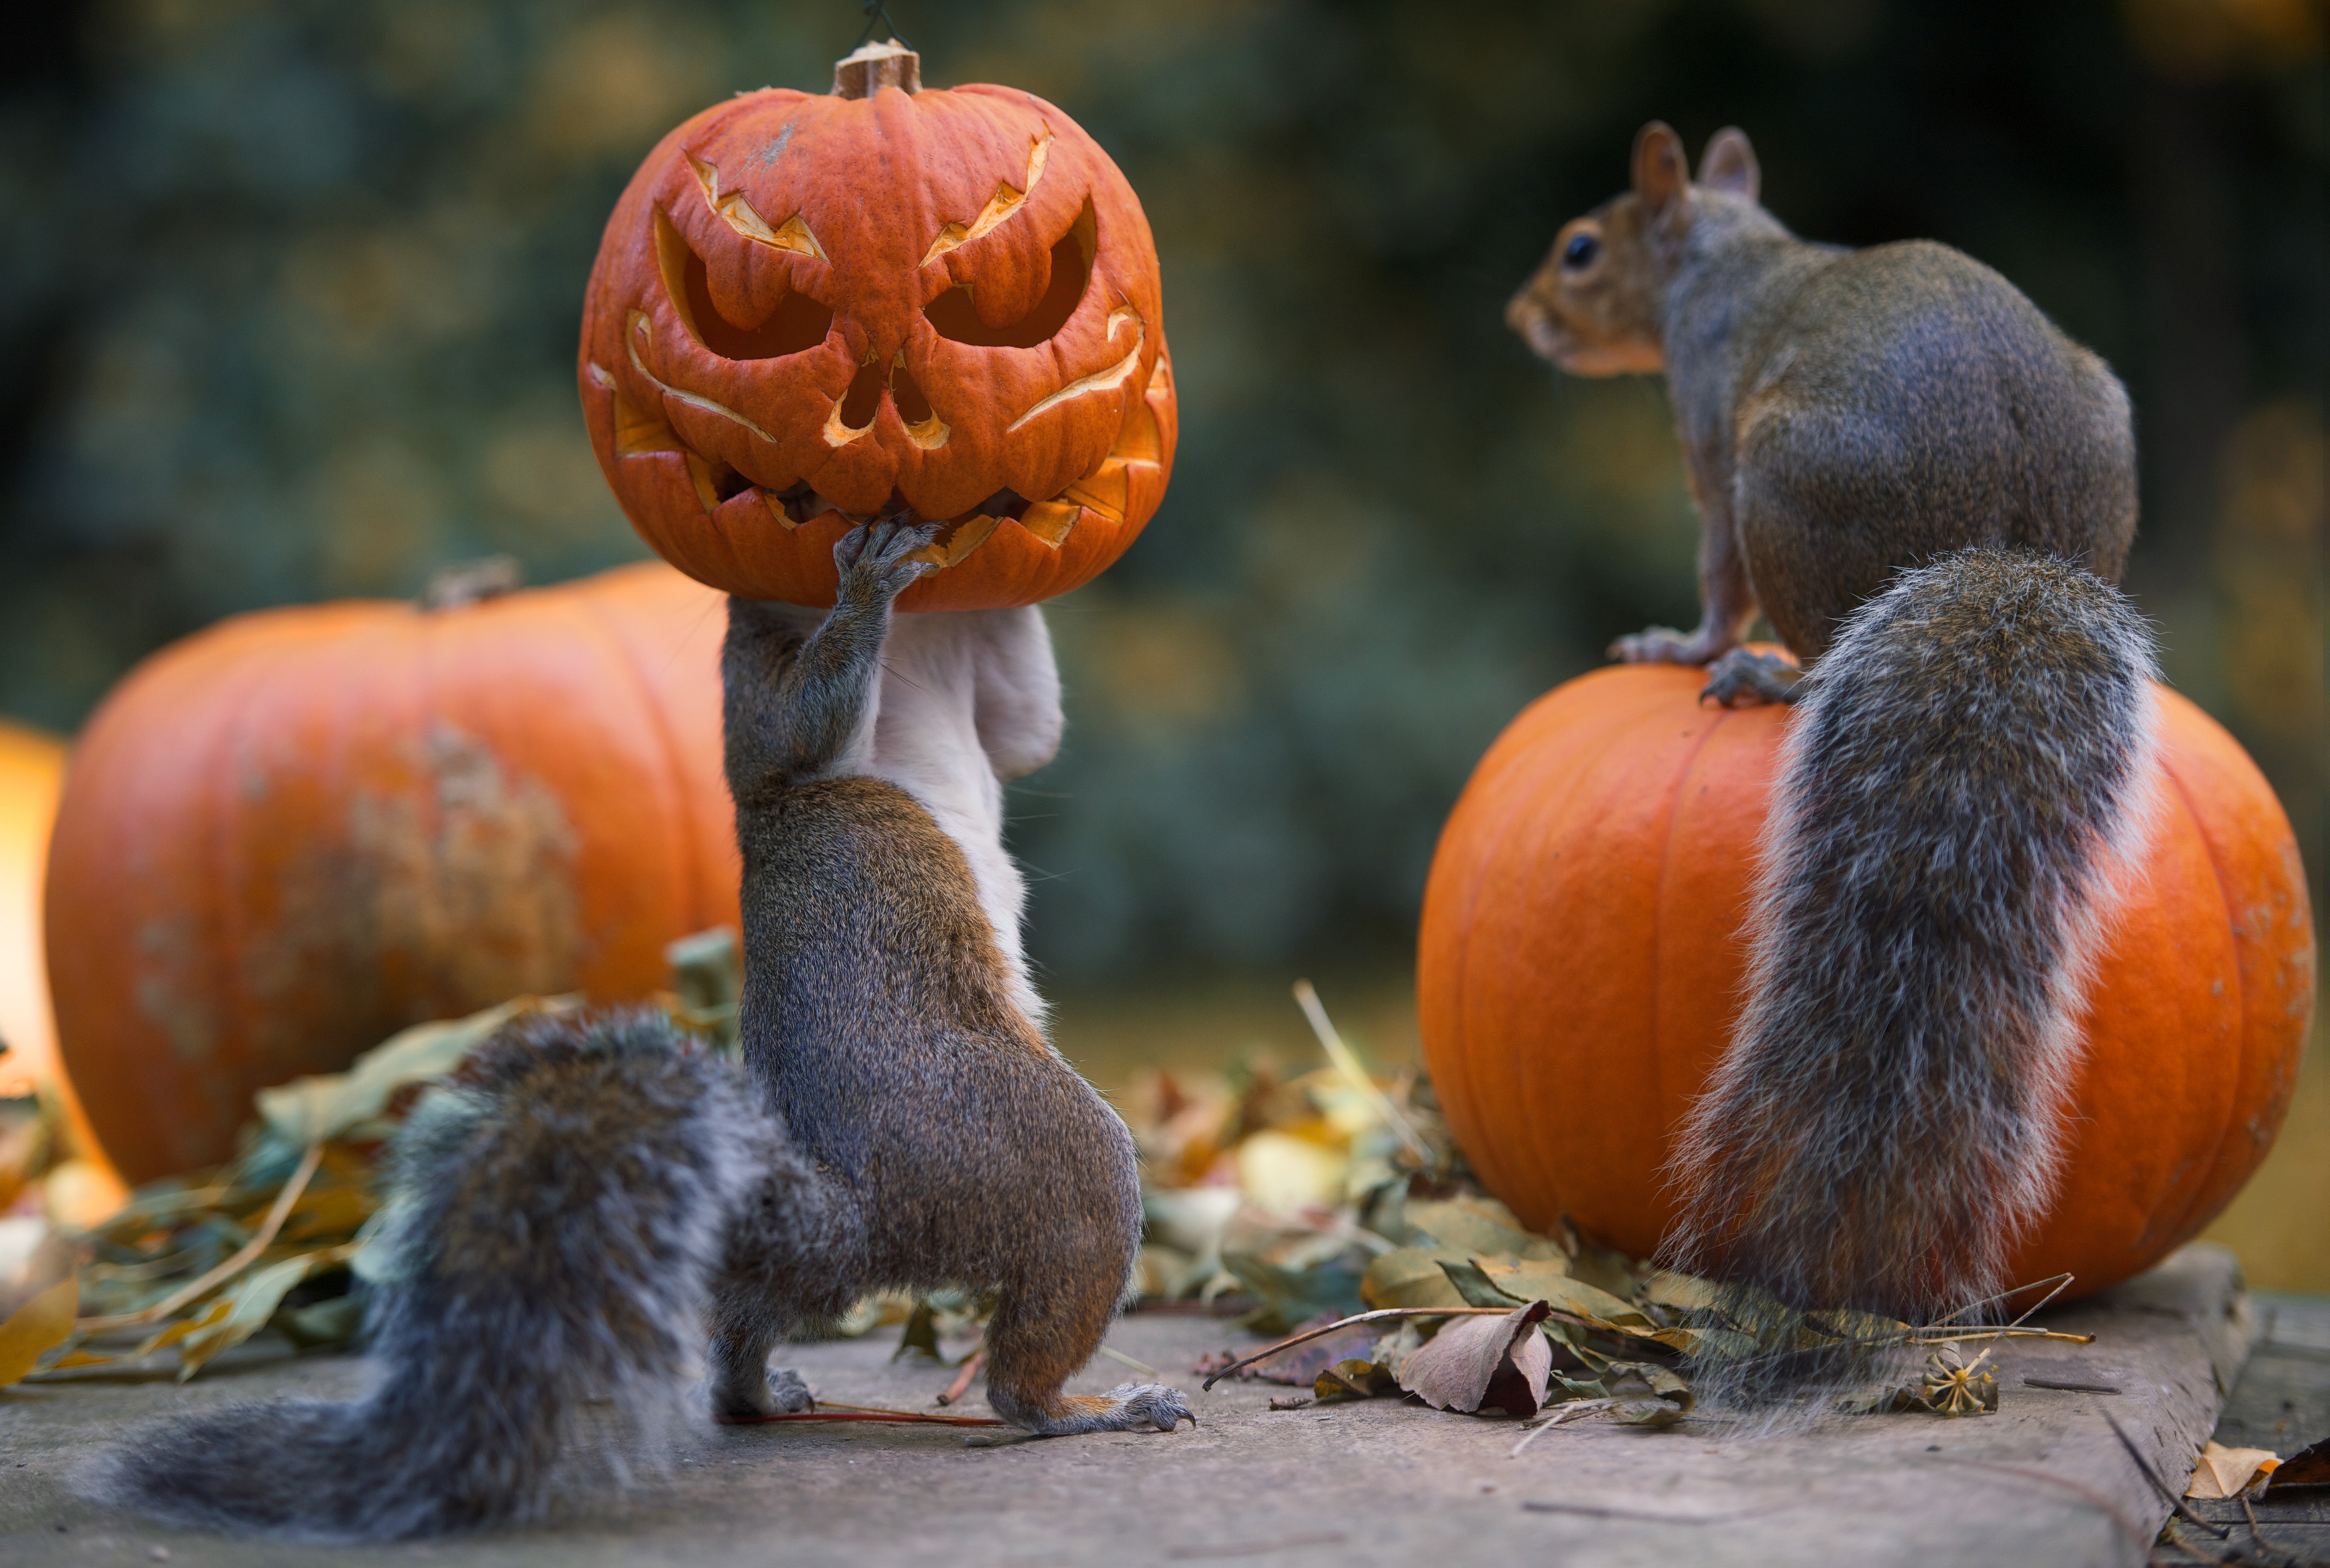 Now that's a horror tail: Squirrels go nuts for Halloween with ...